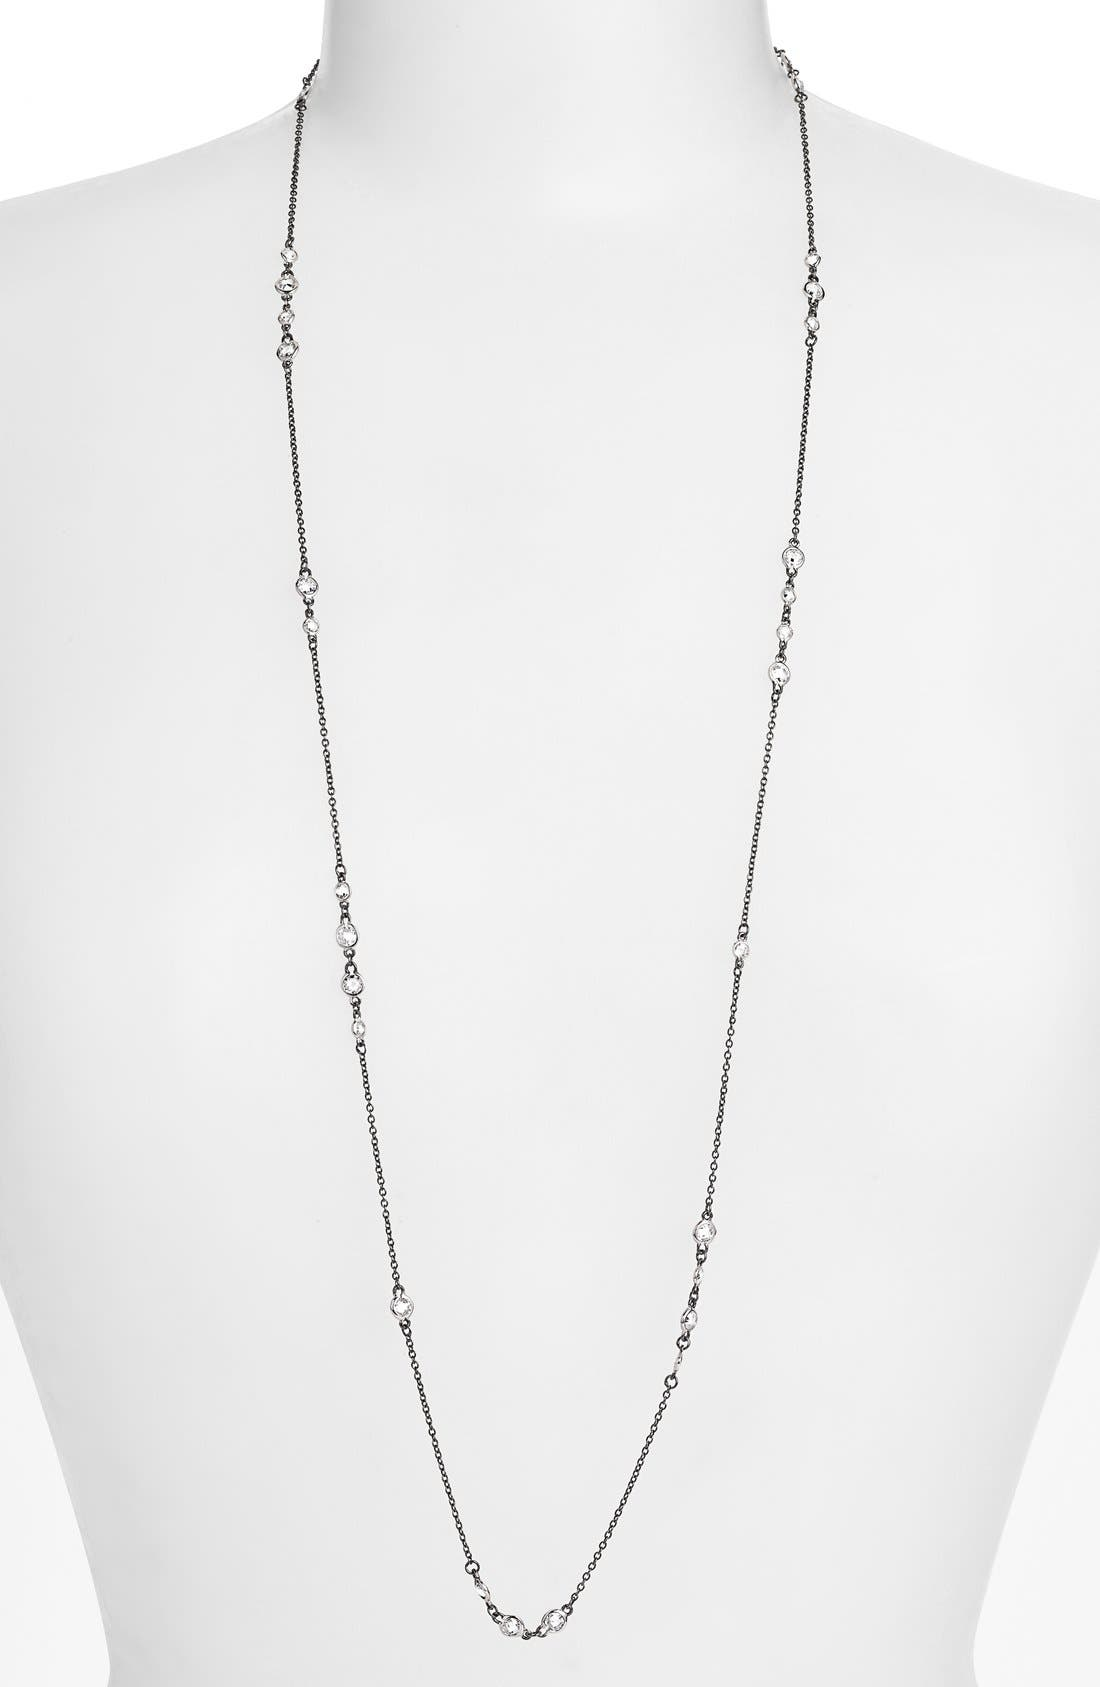 'The Standards' Long Station Necklace,                             Main thumbnail 1, color,                             SILVER/ BLACK